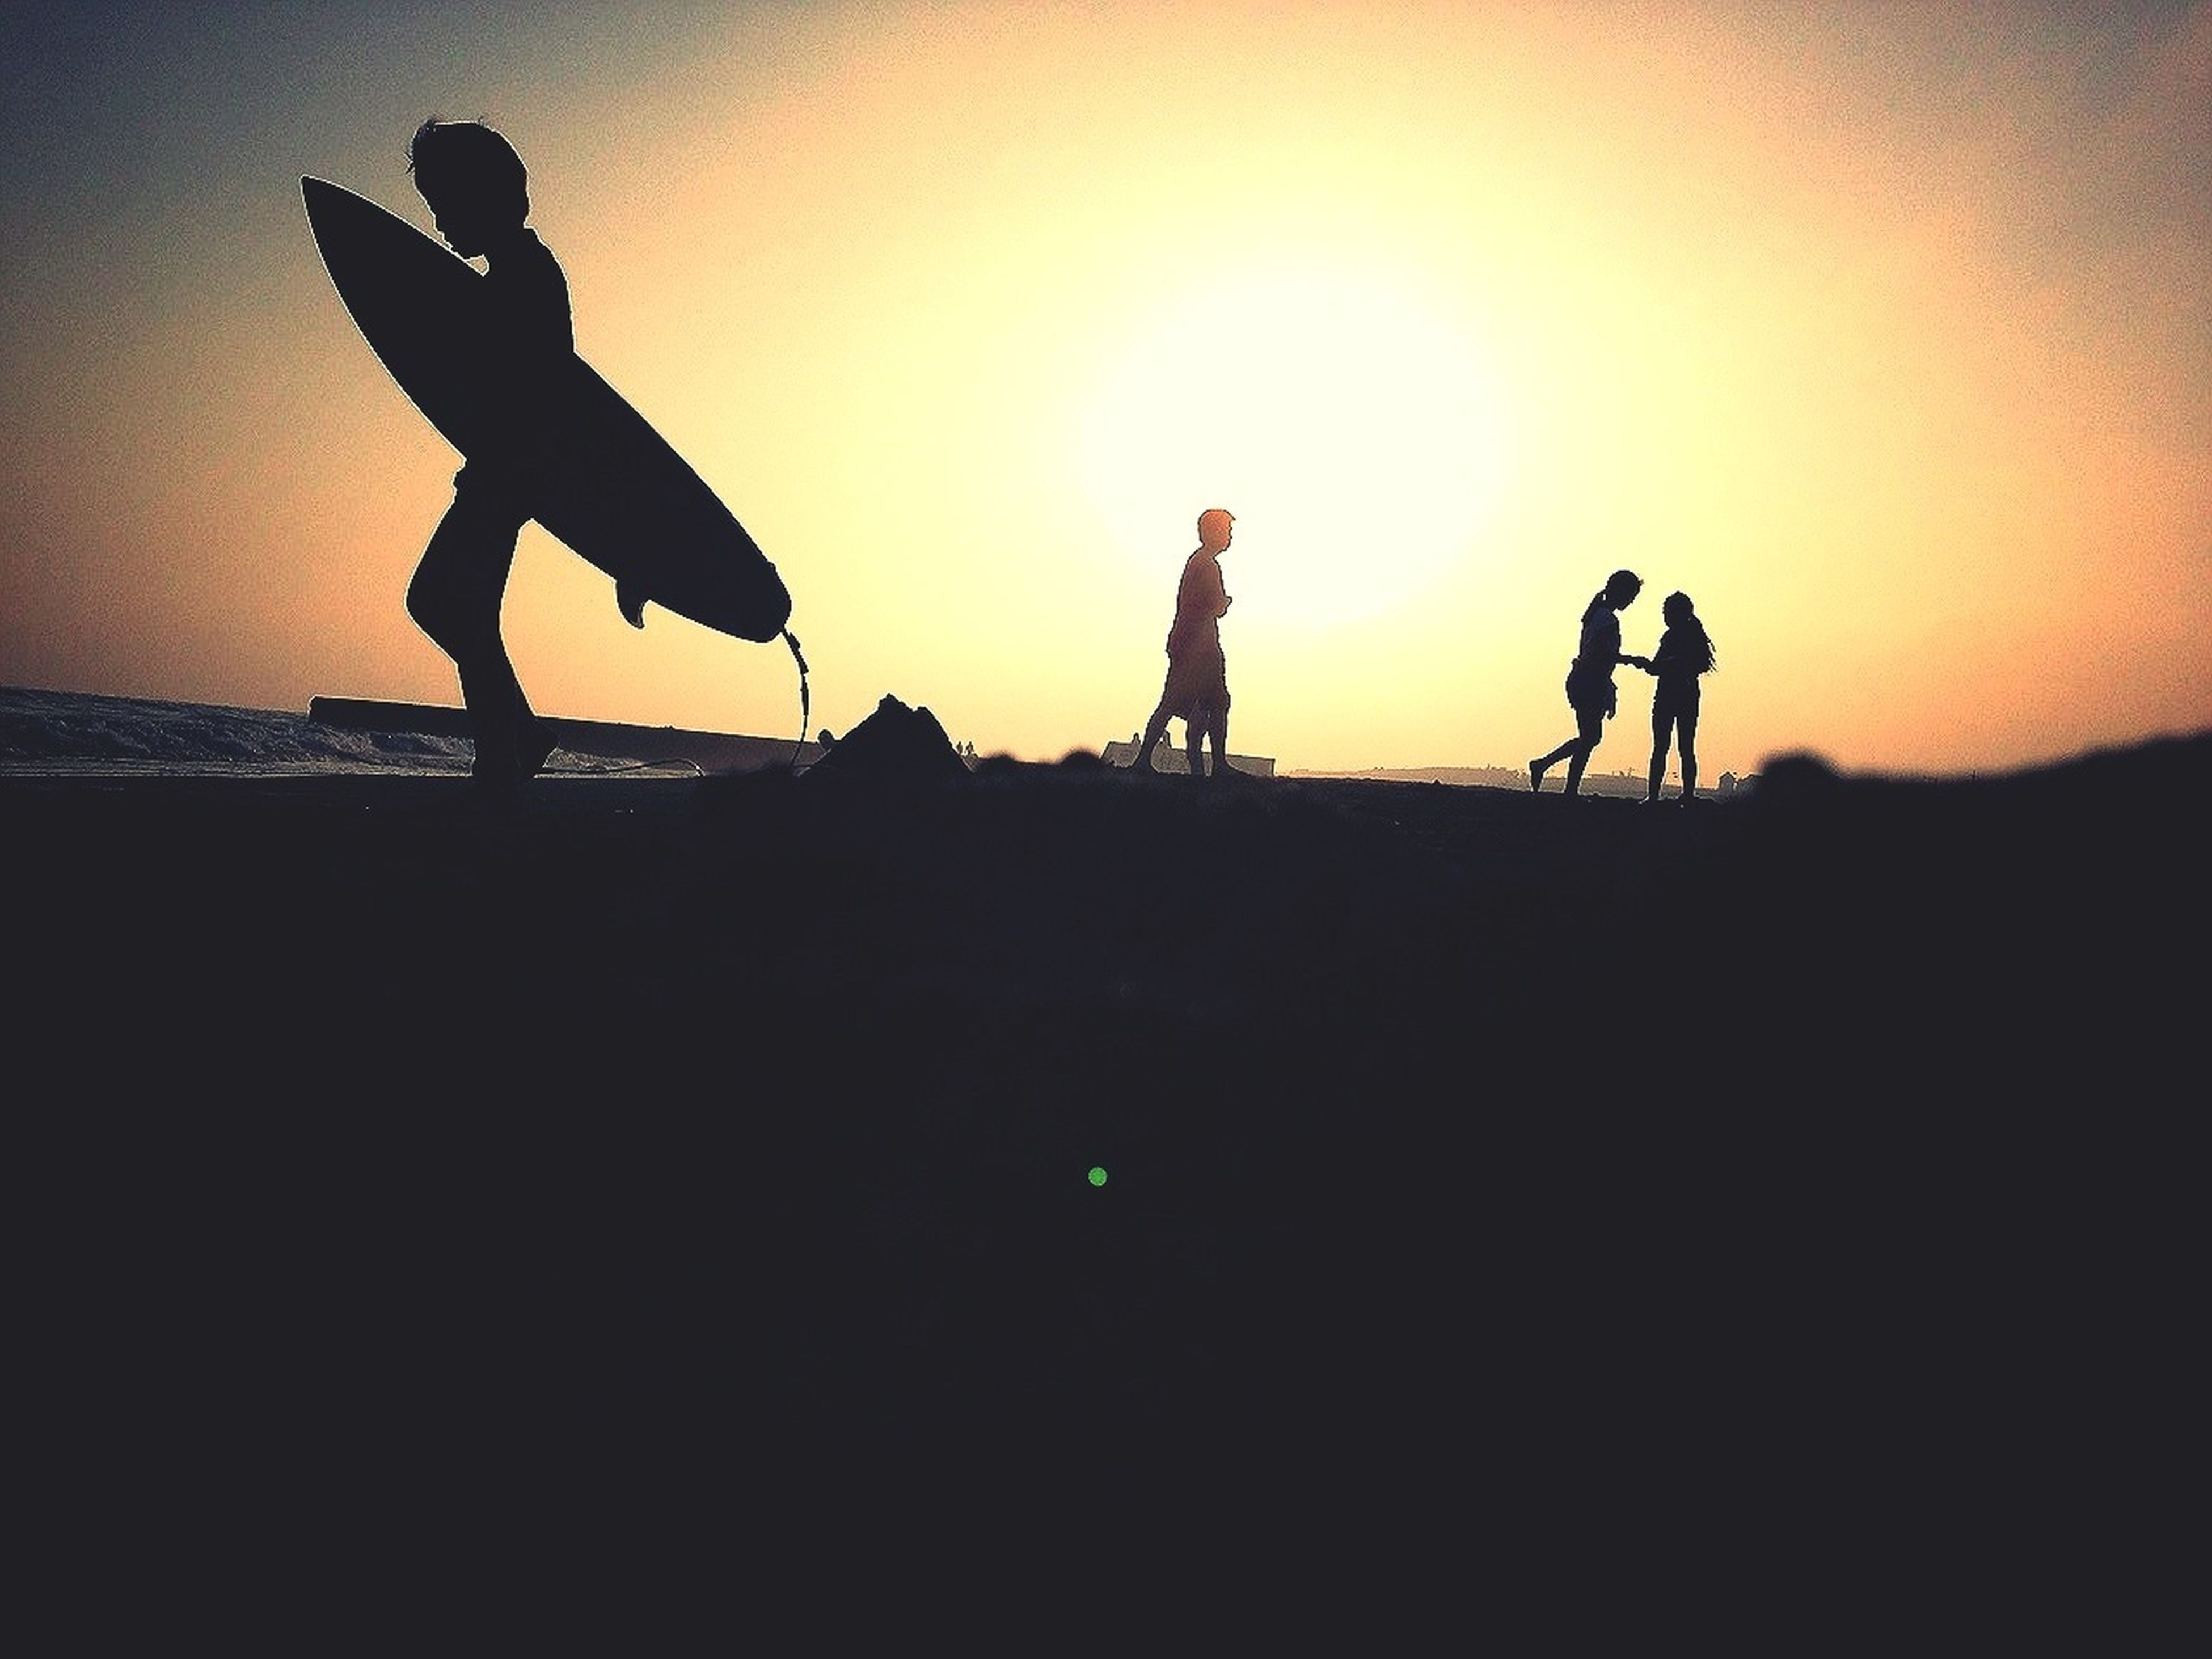 silhouette, sunset, orange color, sky, men, copy space, lifestyles, full length, mid-air, leisure activity, outline, dusk, standing, clear sky, low angle view, outdoors, sun, nature